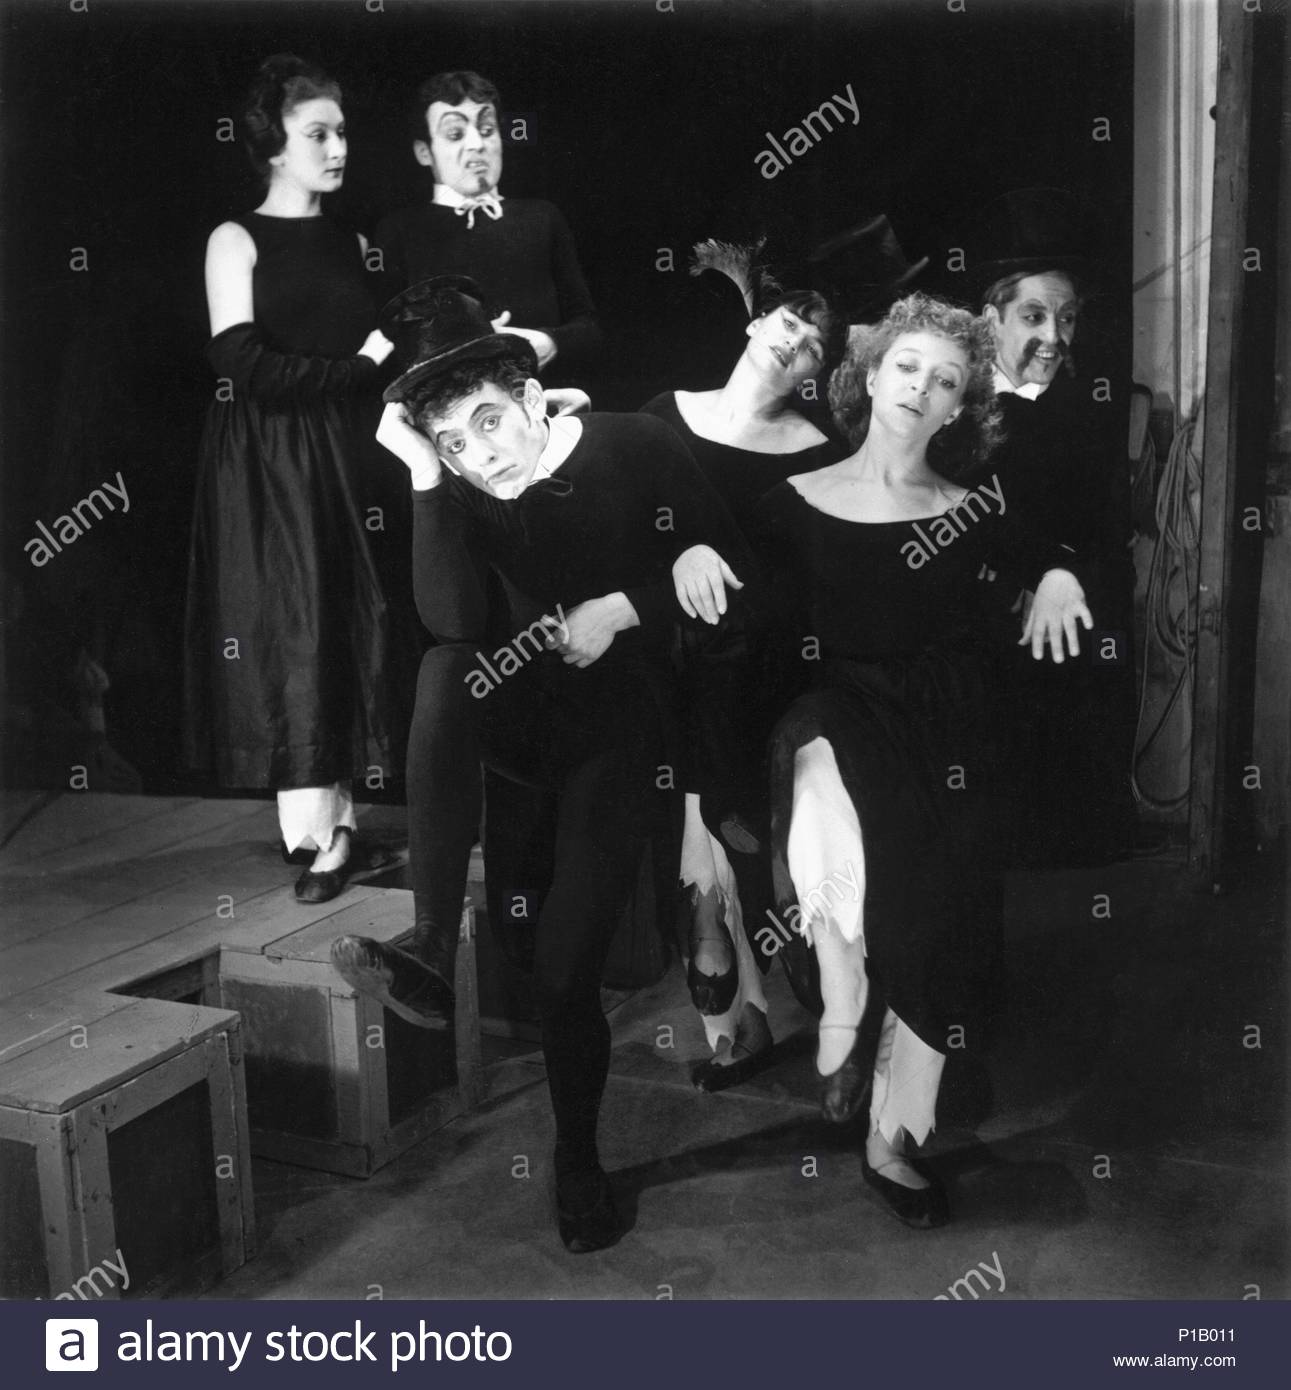 Marcel Marceau,the French mime who created the figure of 'Bip'. Marceau (center)and his group of actors,Paris,1951. Location: Townscape, Paris, France. - Stock Image